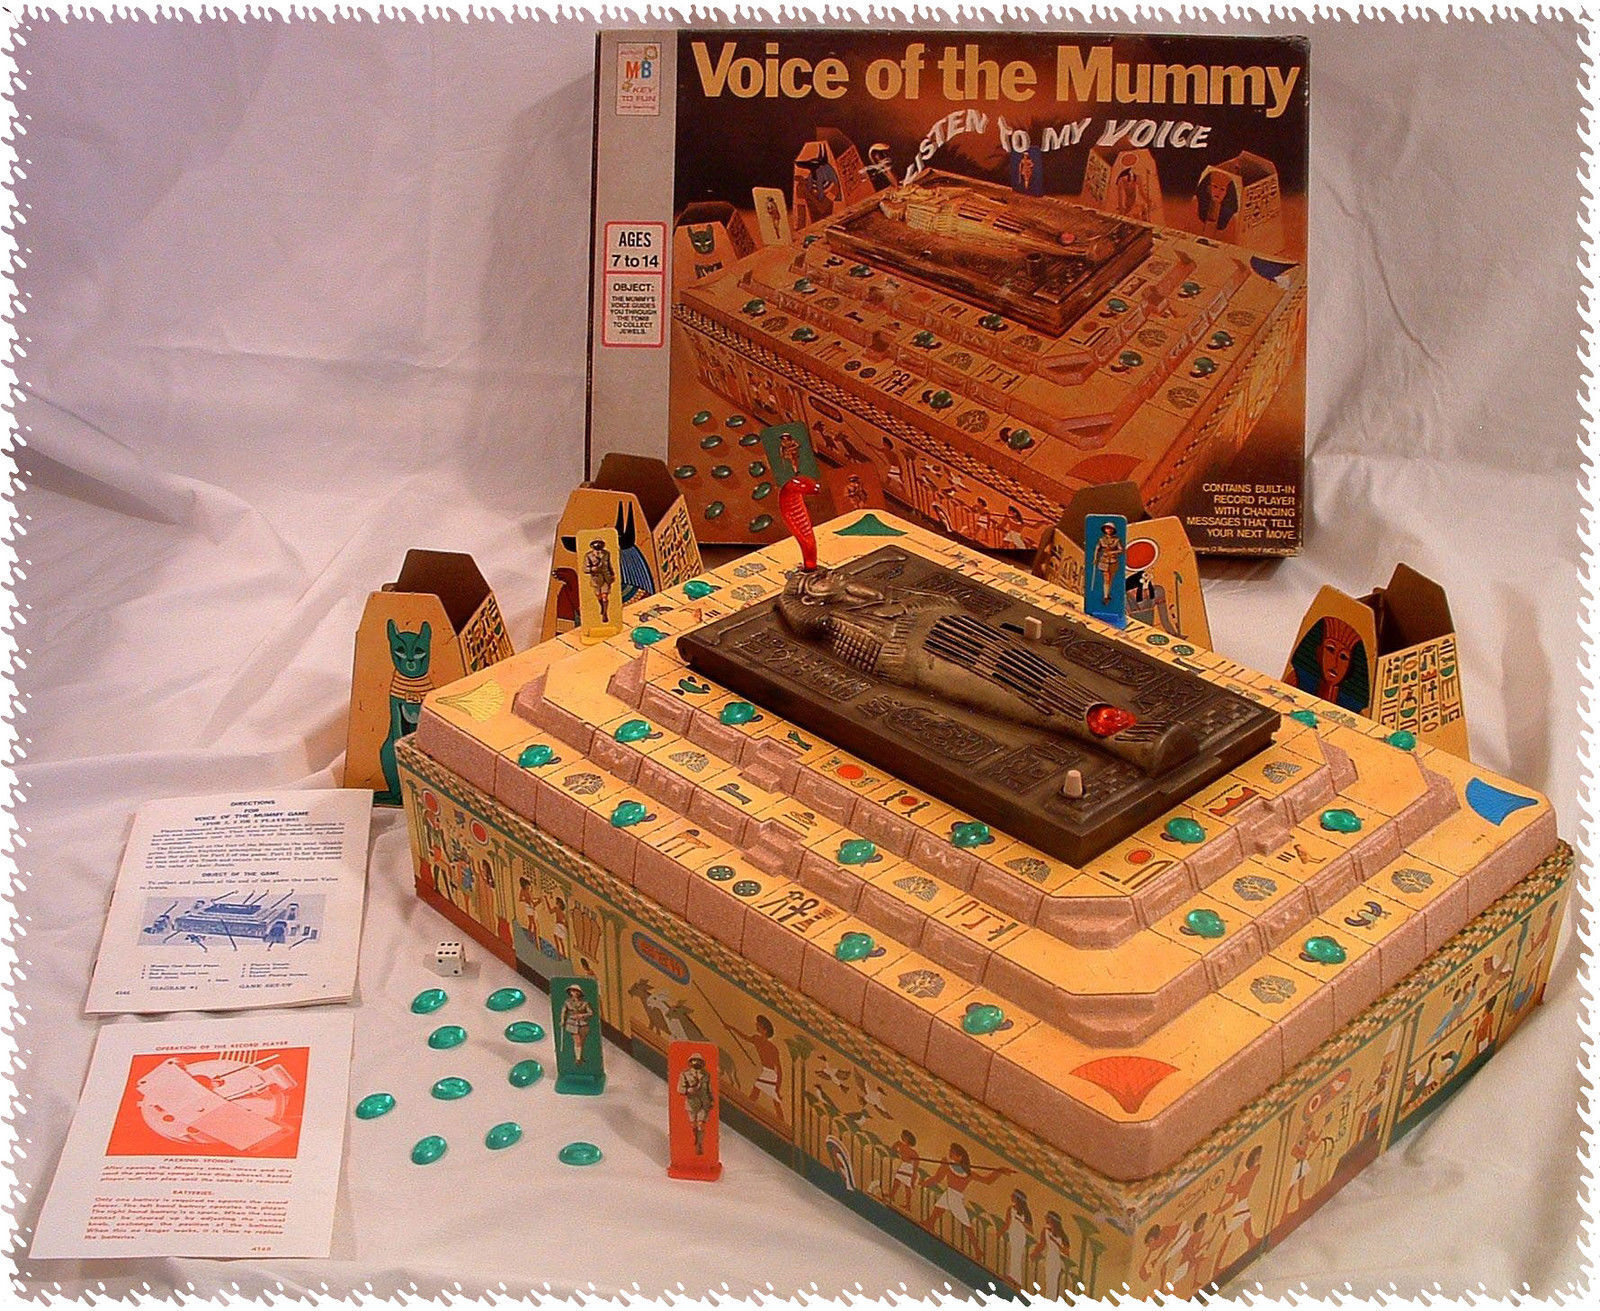 1971 Voice of the Mummy Board Game - Grün Grün Grün Precious Jewels-Complete Working 100% 9e4c2d